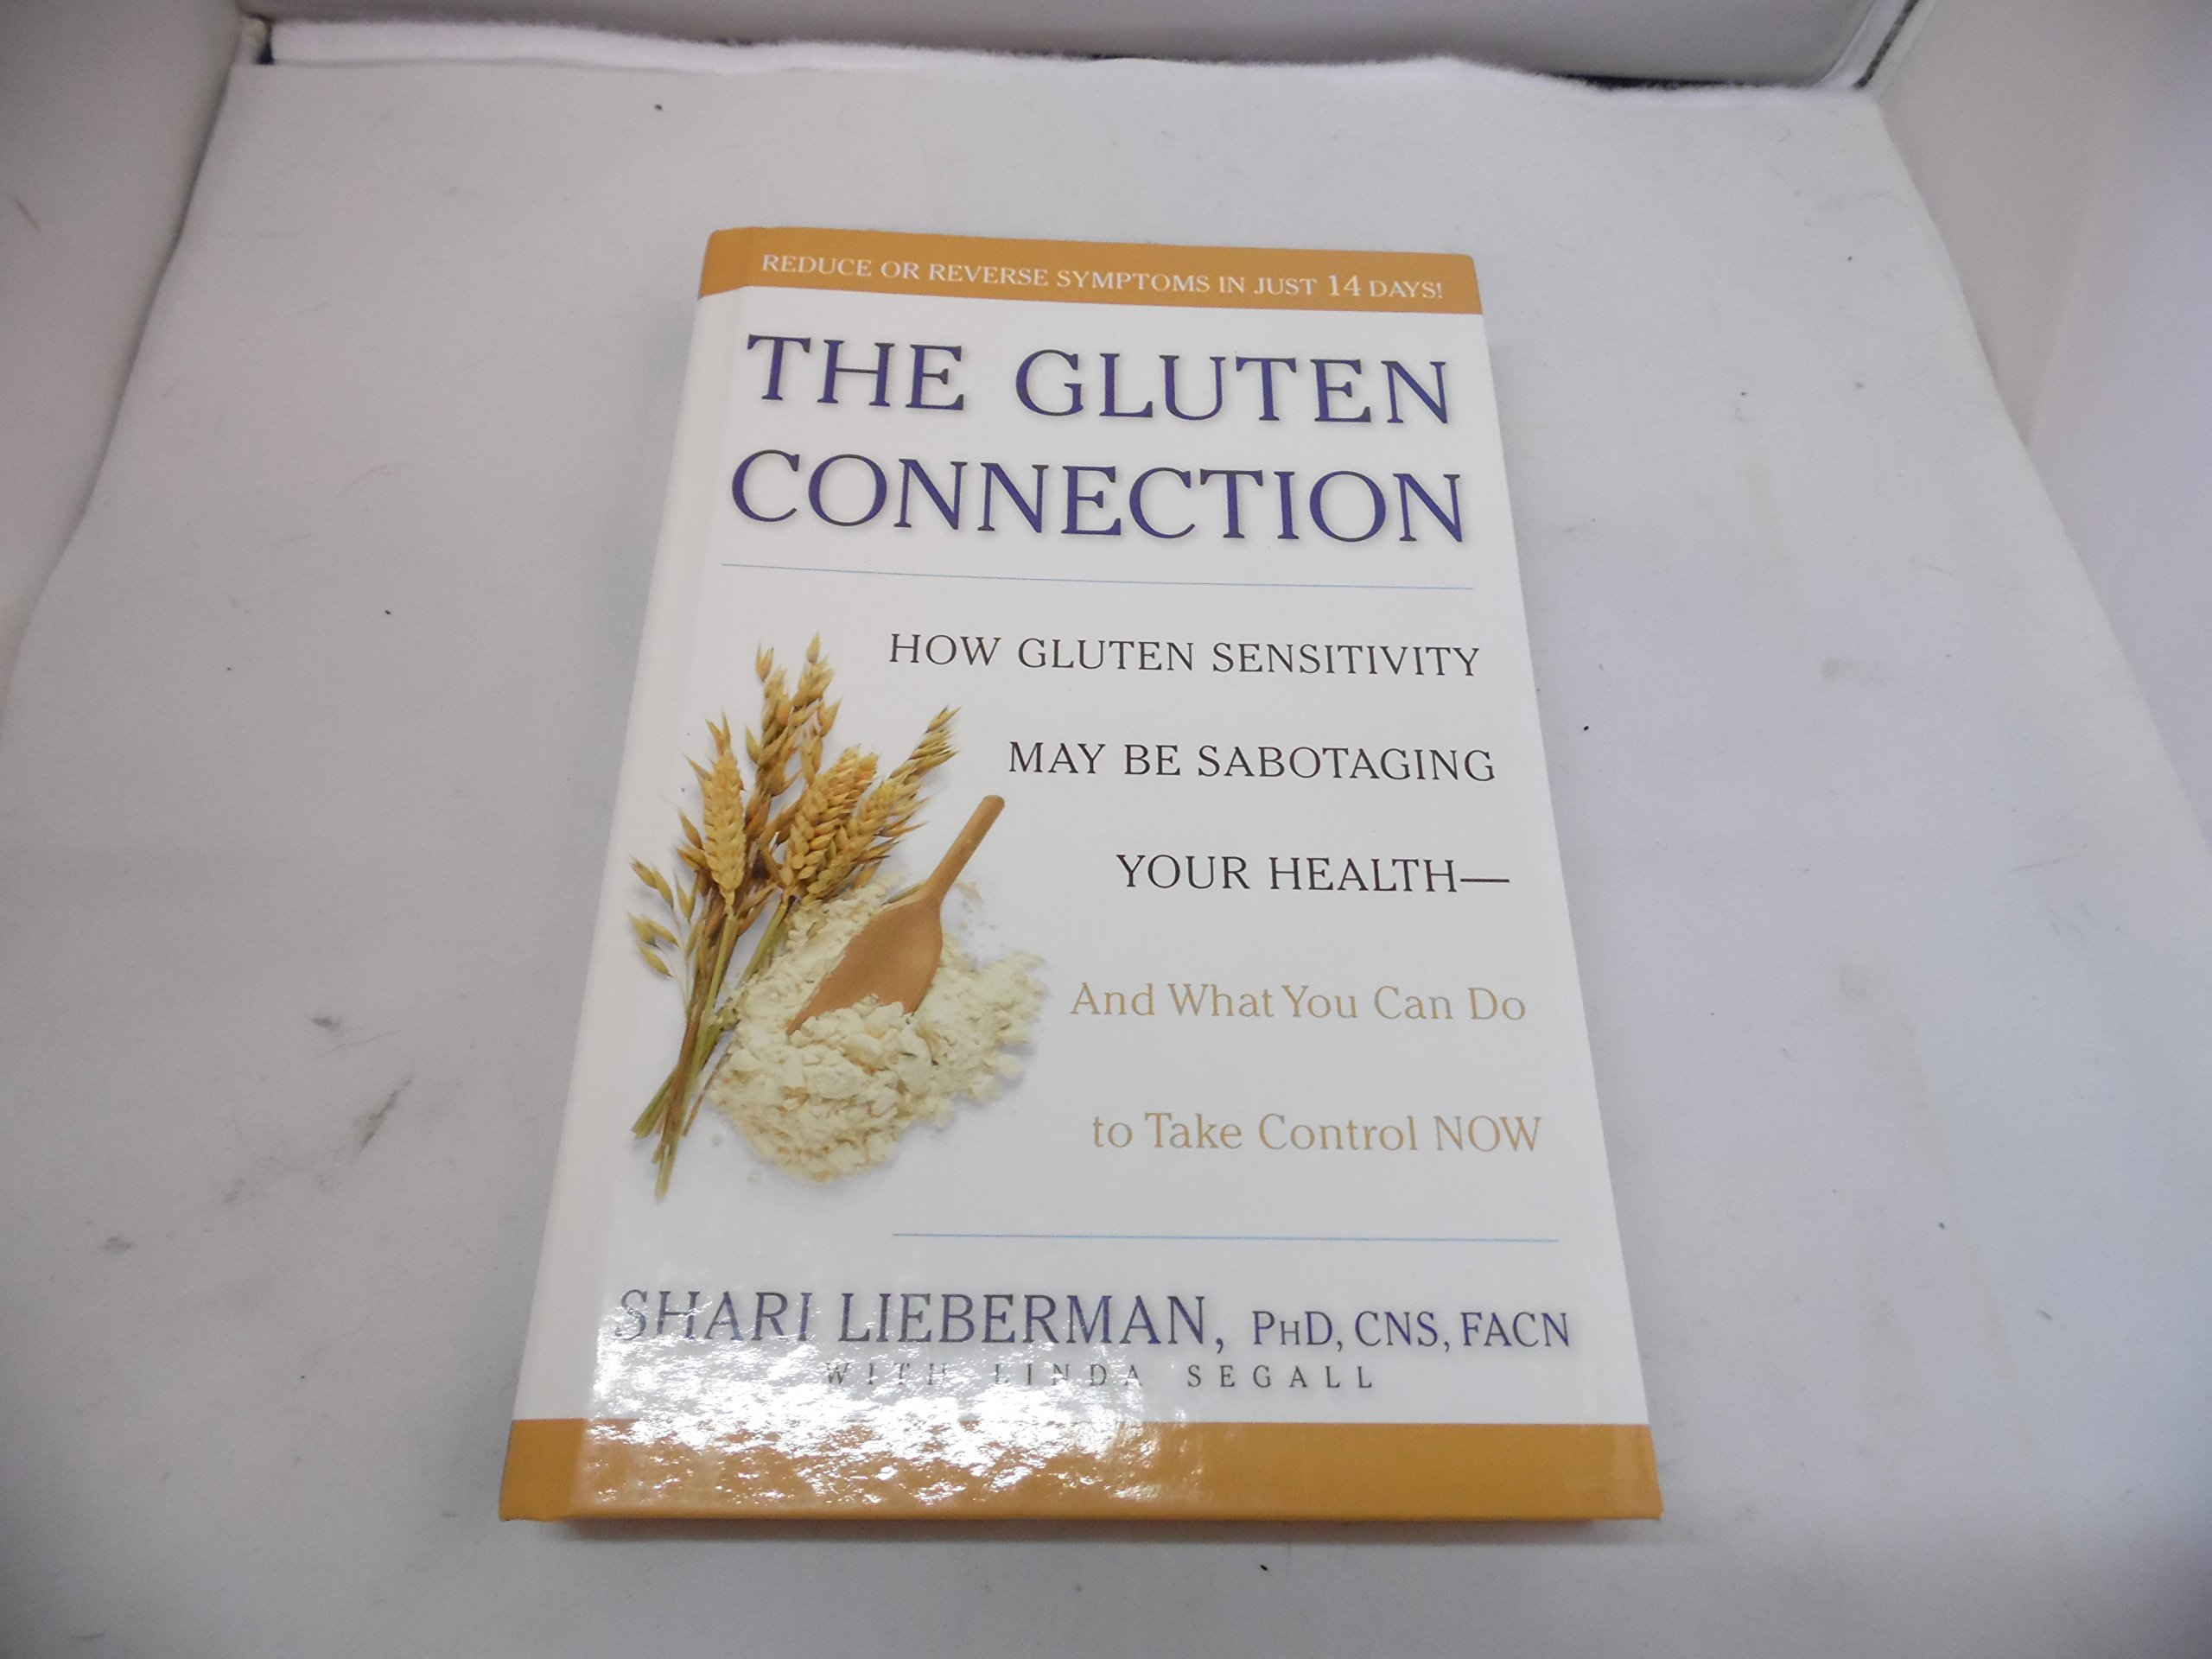 Download The Gluten Connection: How Gluten Sensitivity May Be Sabotaging Your Health - And What You Can Do to Take Control NOW PDF